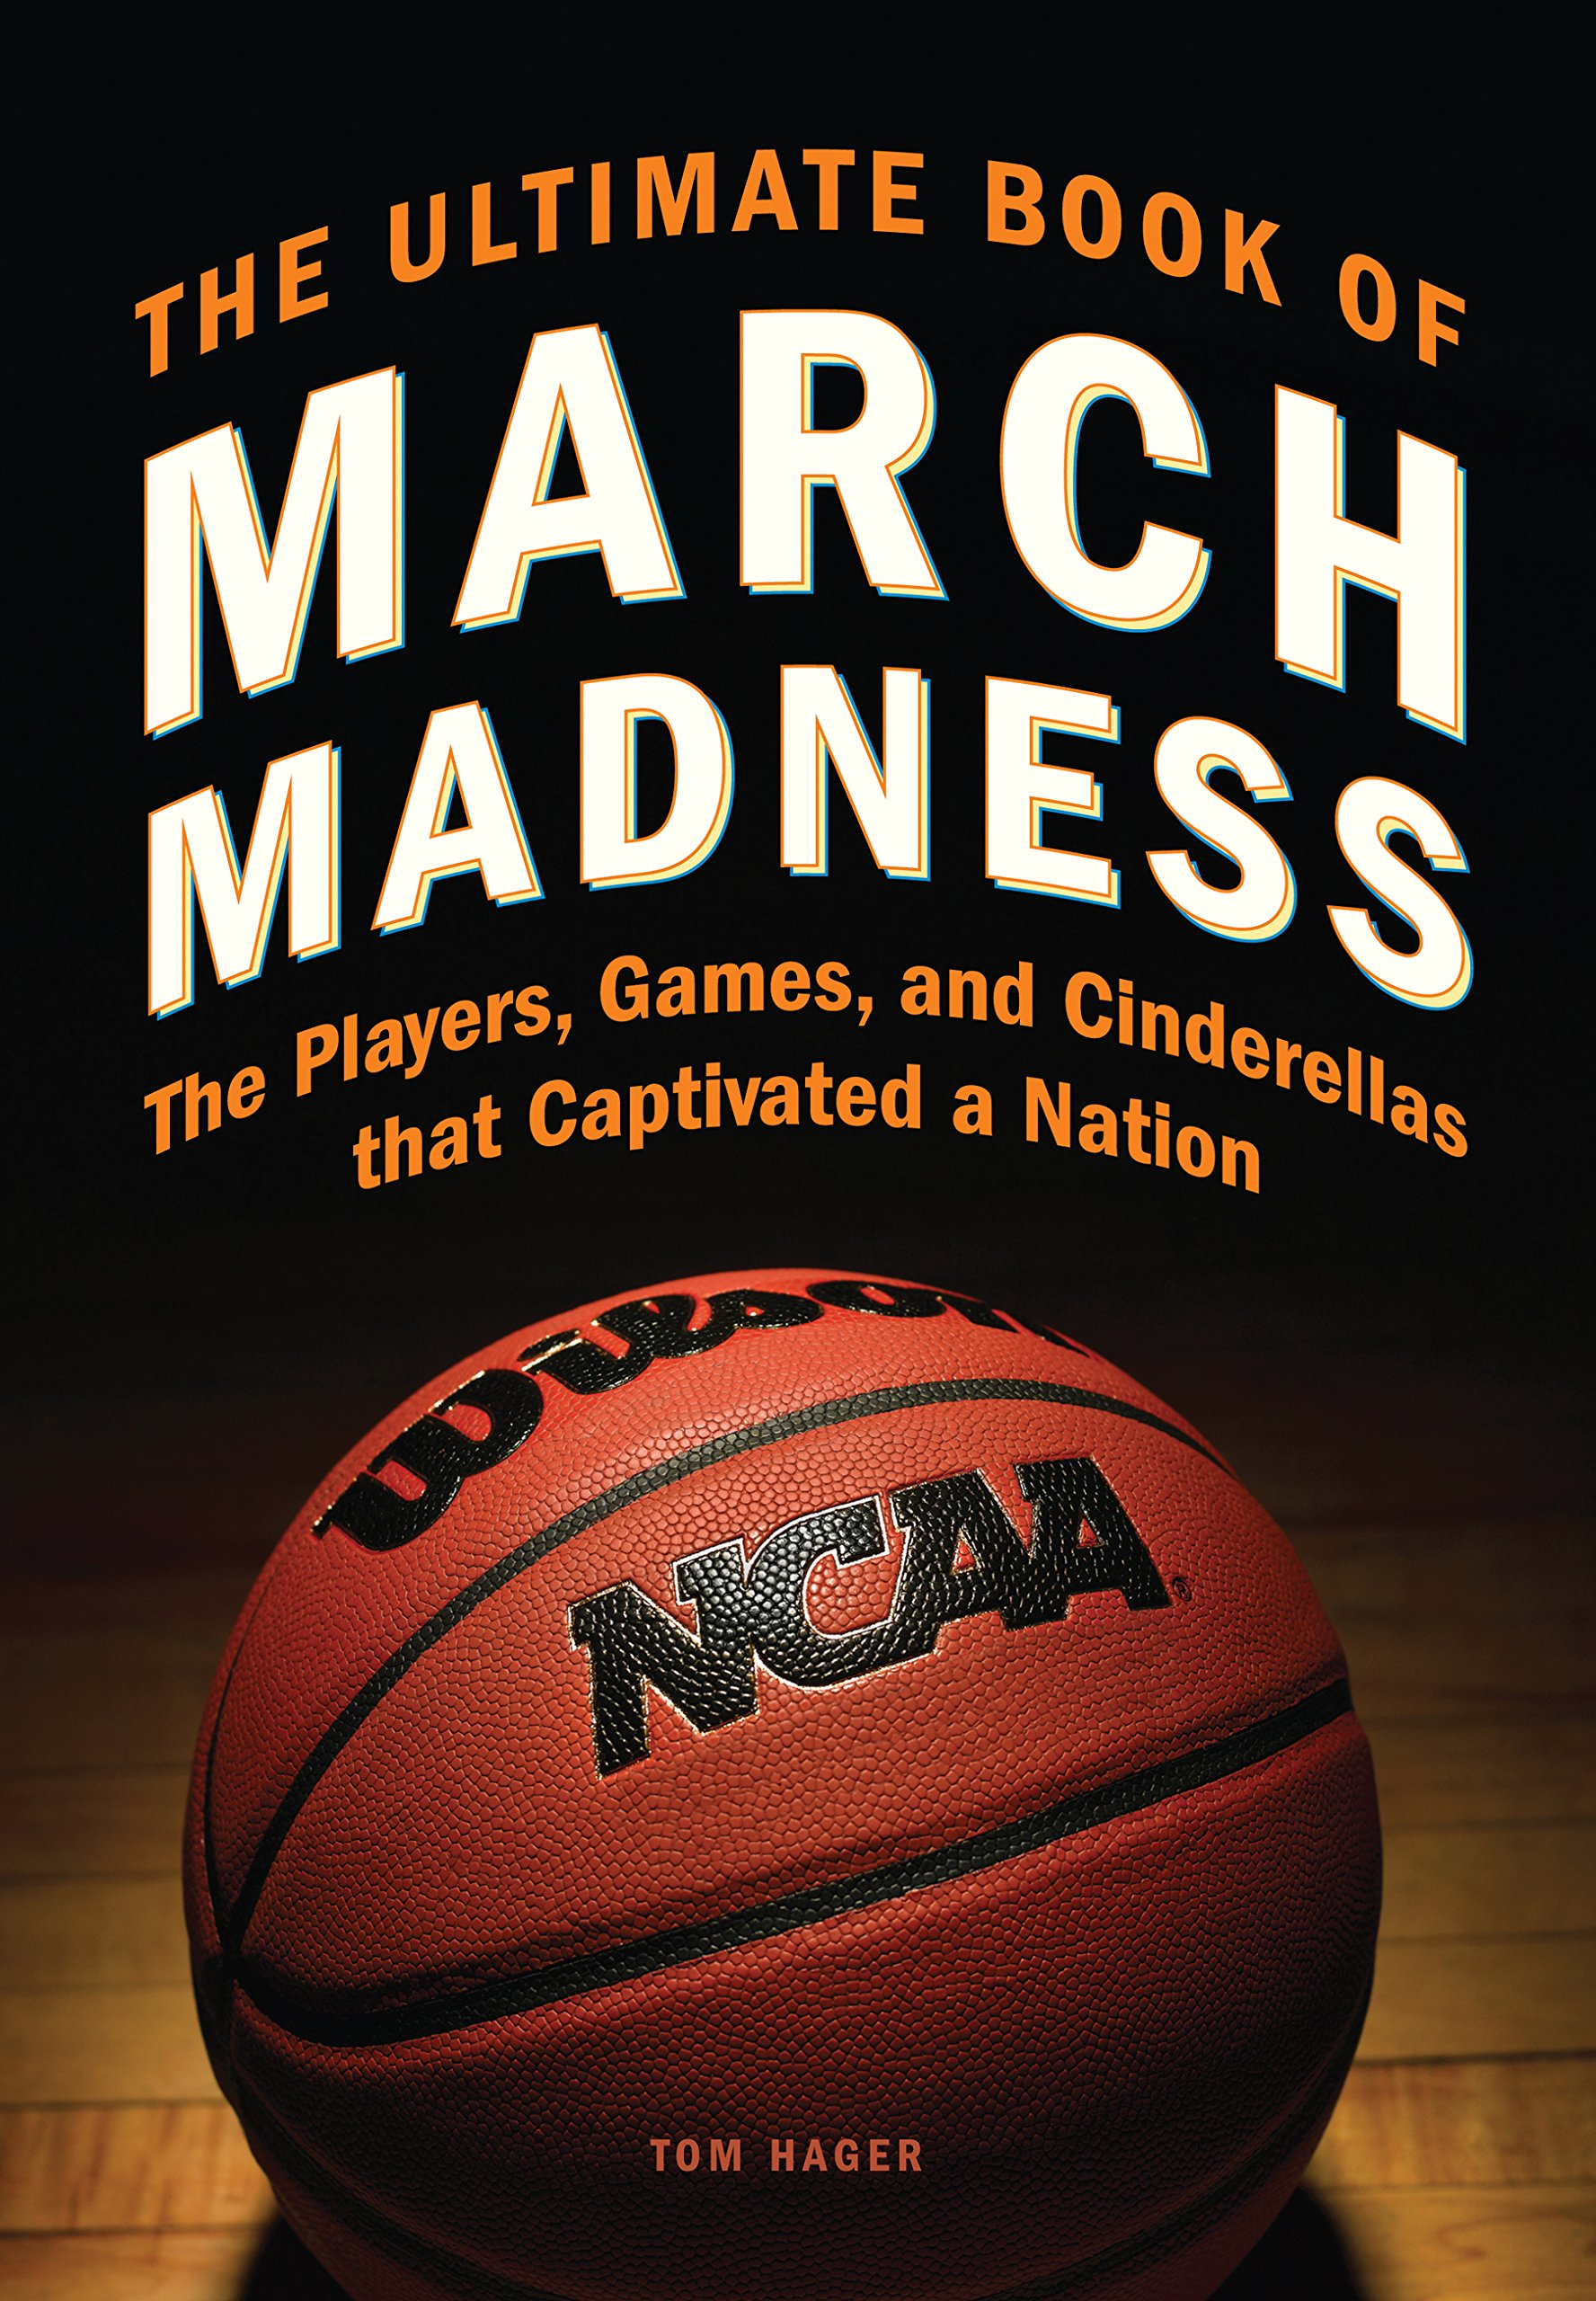 Read Online The Ultimate Book of March Madness: The Players, Games, and Cinderellas that Captivated a Nation pdf epub